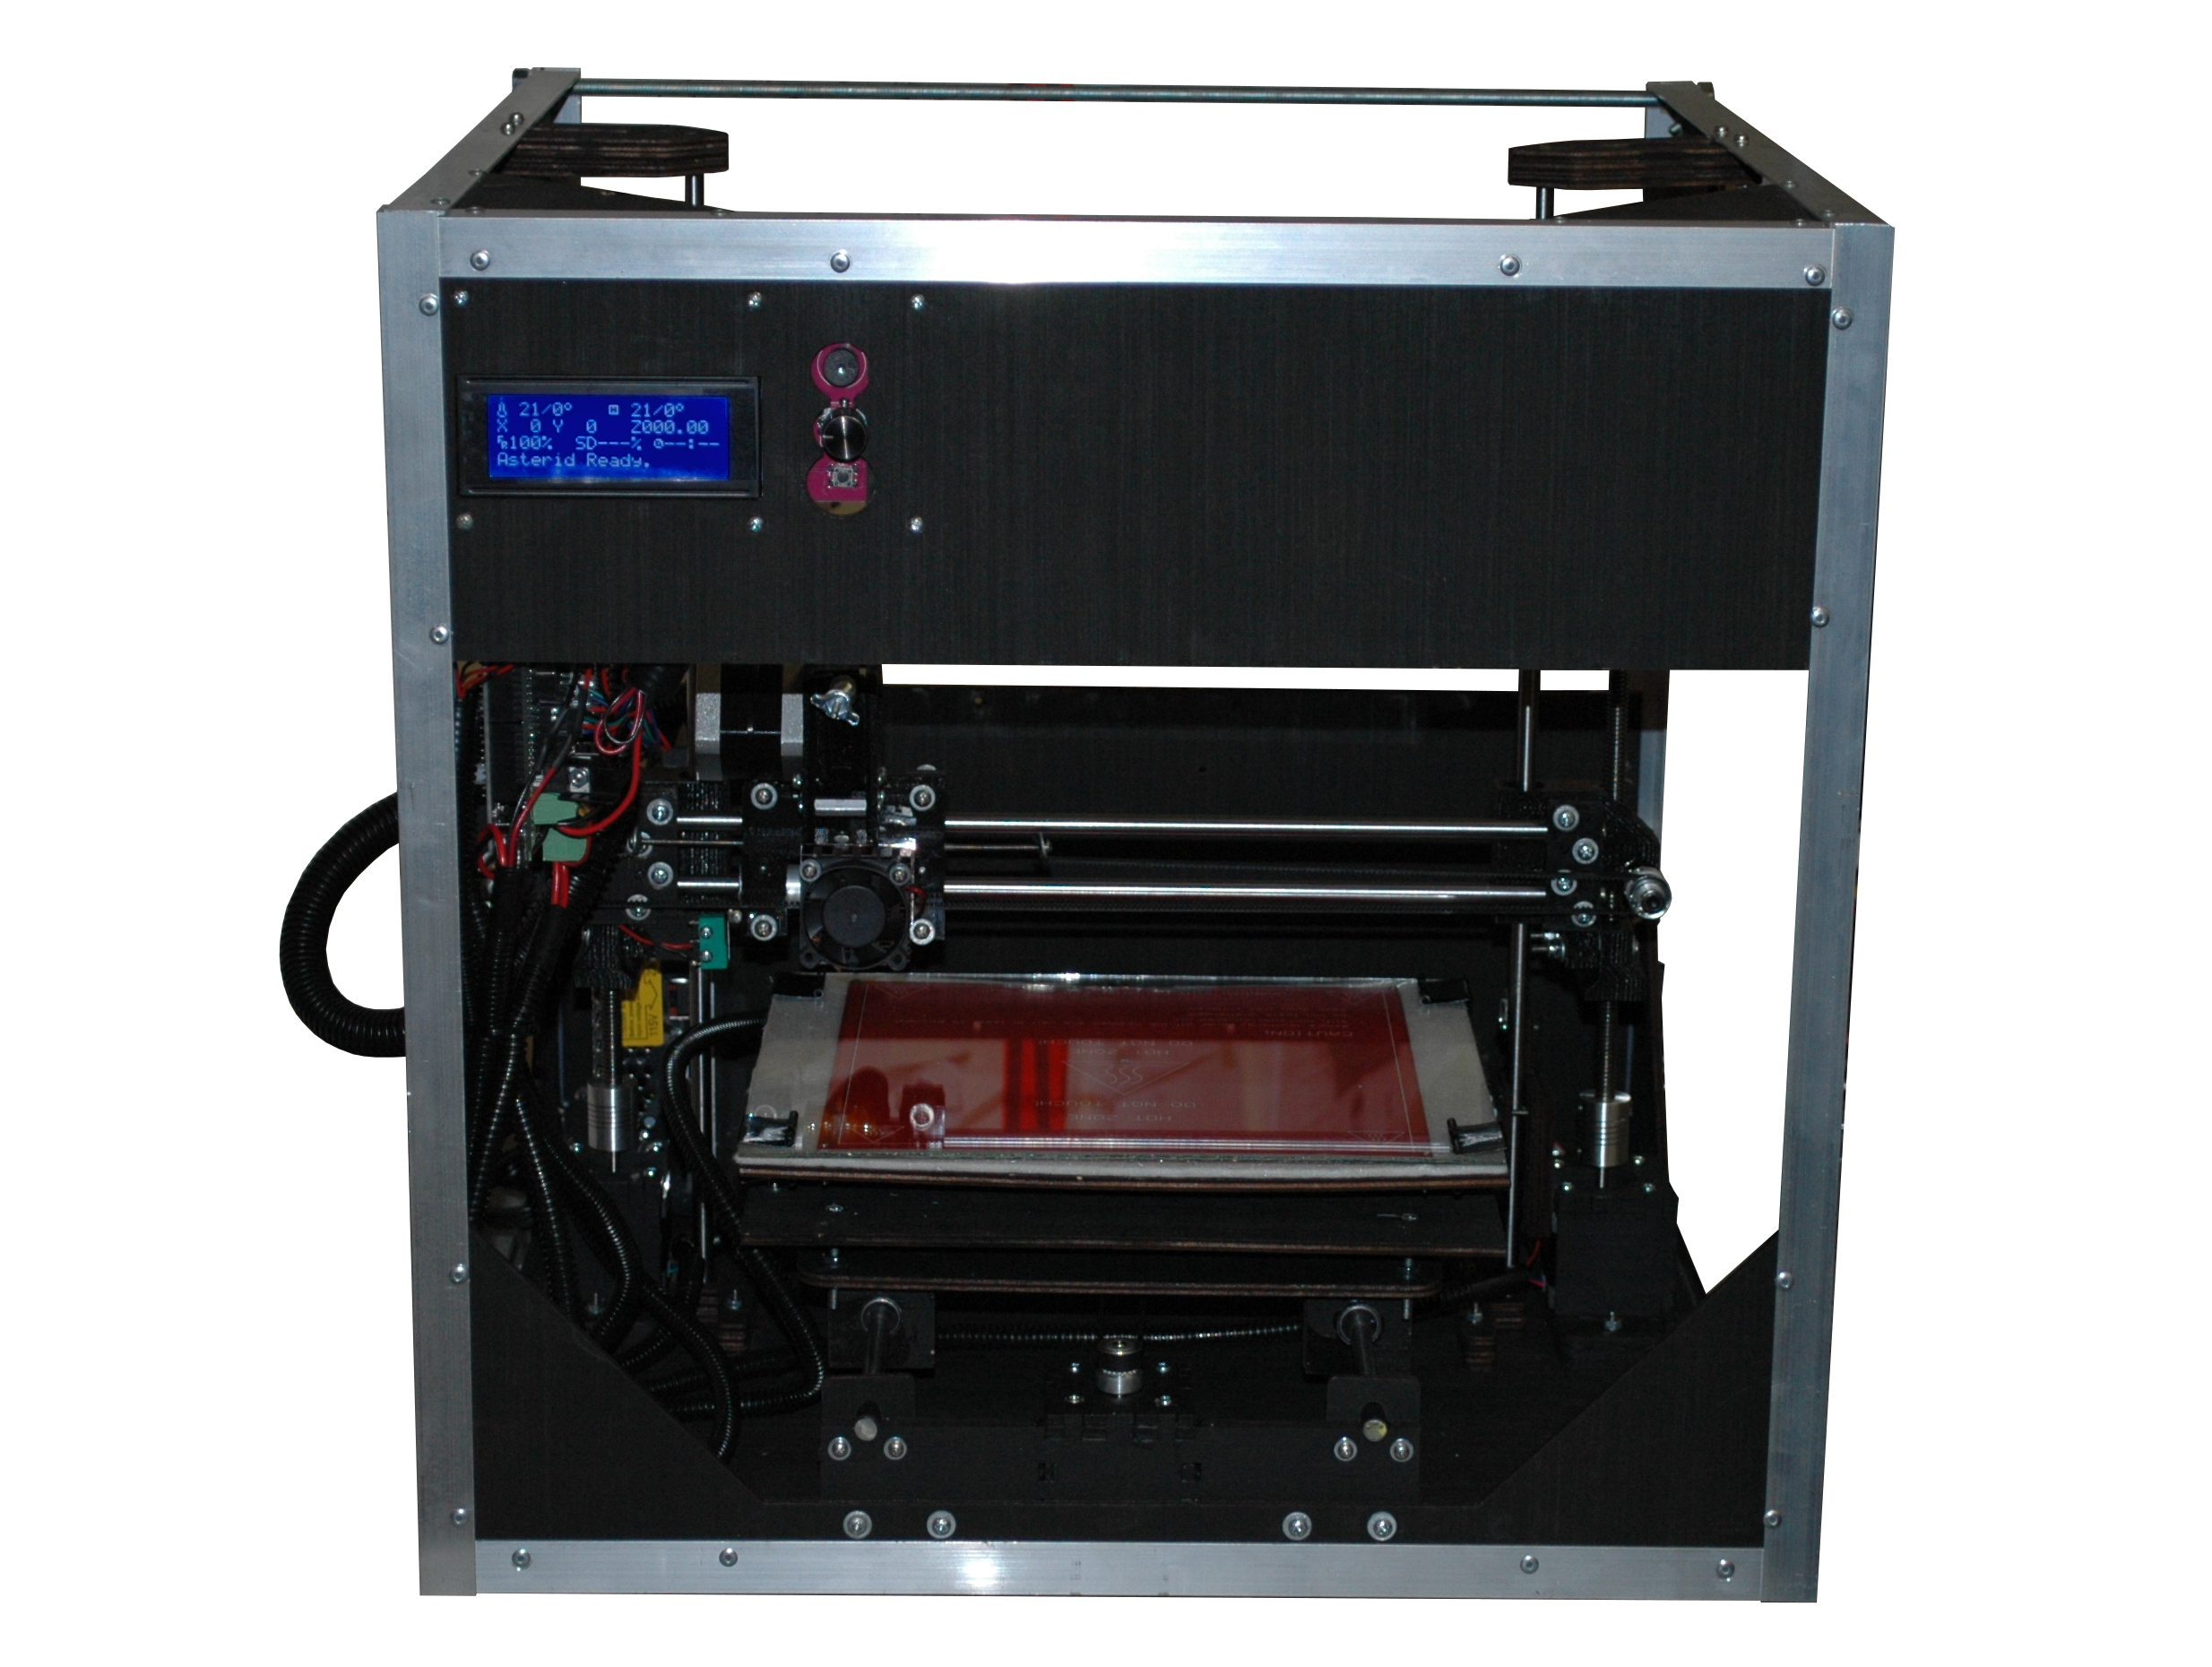 Open Source Asterid 2200 3D Printer